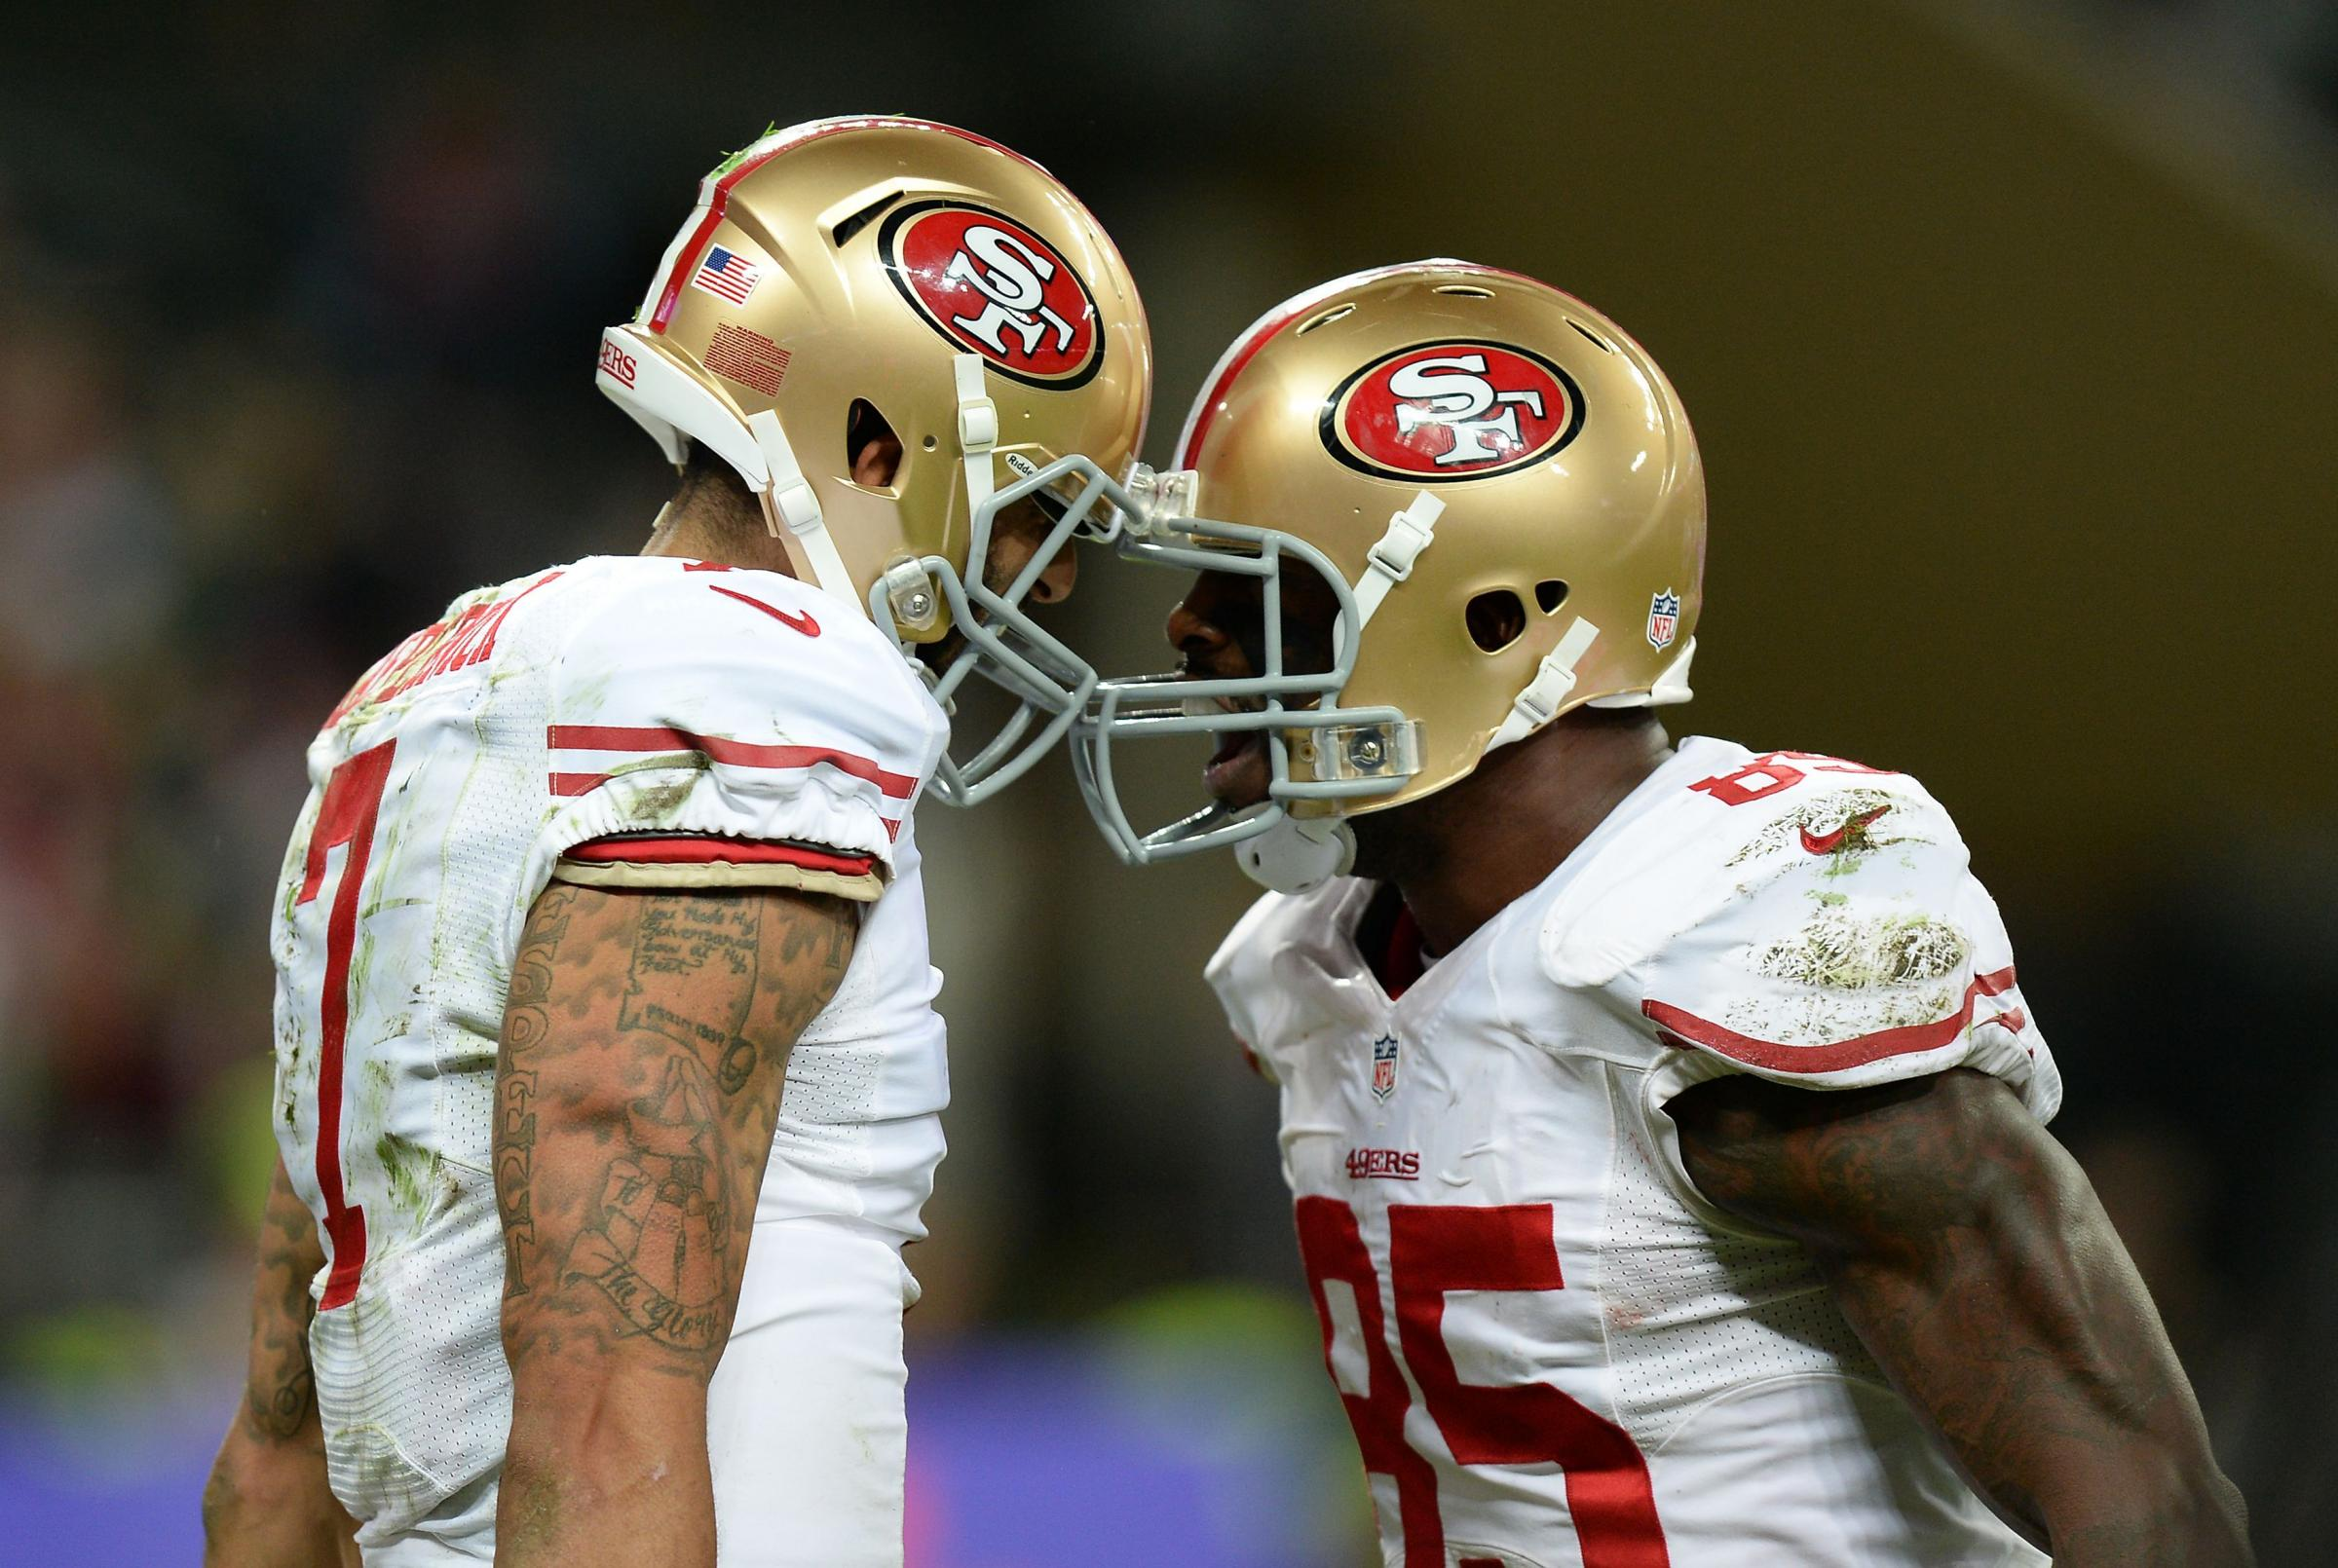 PARTY TIME: San Francisco 49ers' quarterback Colin Kaepernick celebrates with team-mate Vernon Davis after scoring his second touchdown